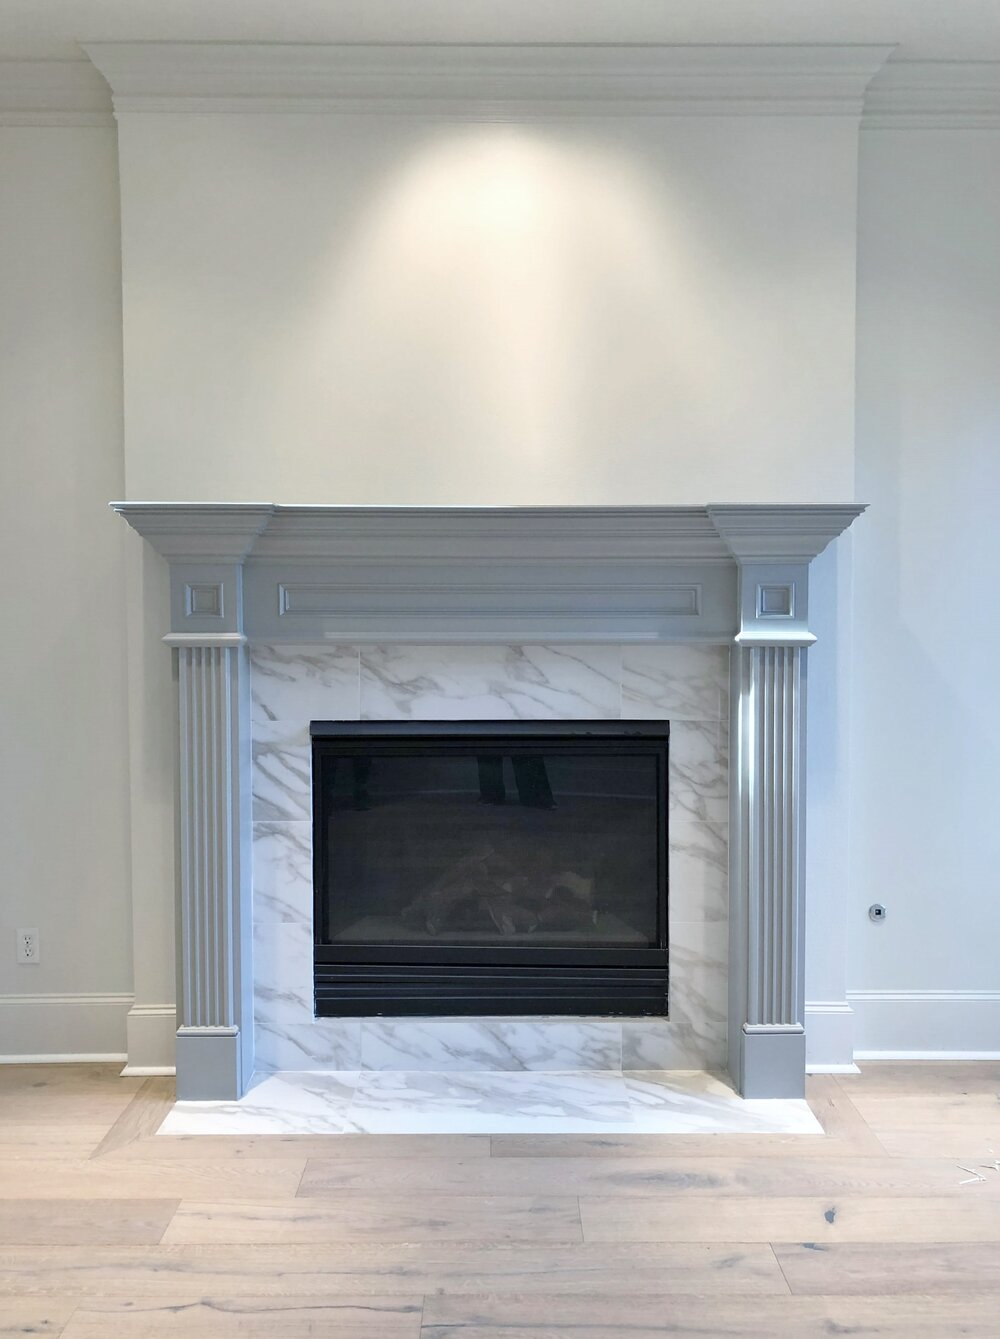 Slate Tiles for Fireplace Elegant 5 Amazing Fireplace Transformations with Minimal Remodeling